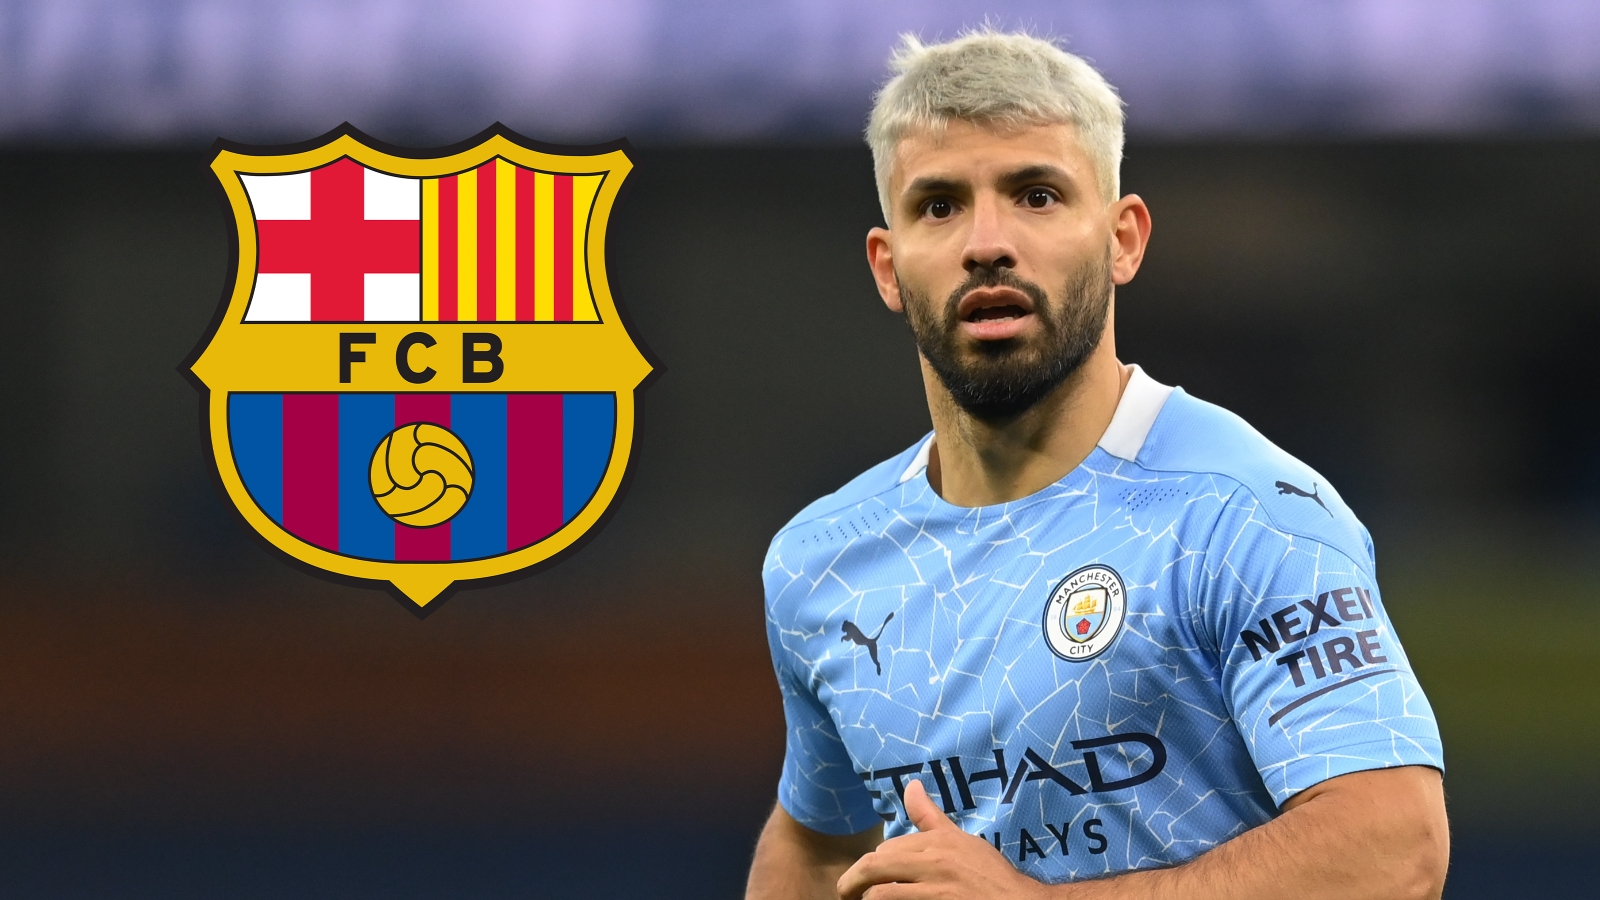 Sergio Agüero will be in Barcelona this morning to complete his medical ahead of completing his move from Man City